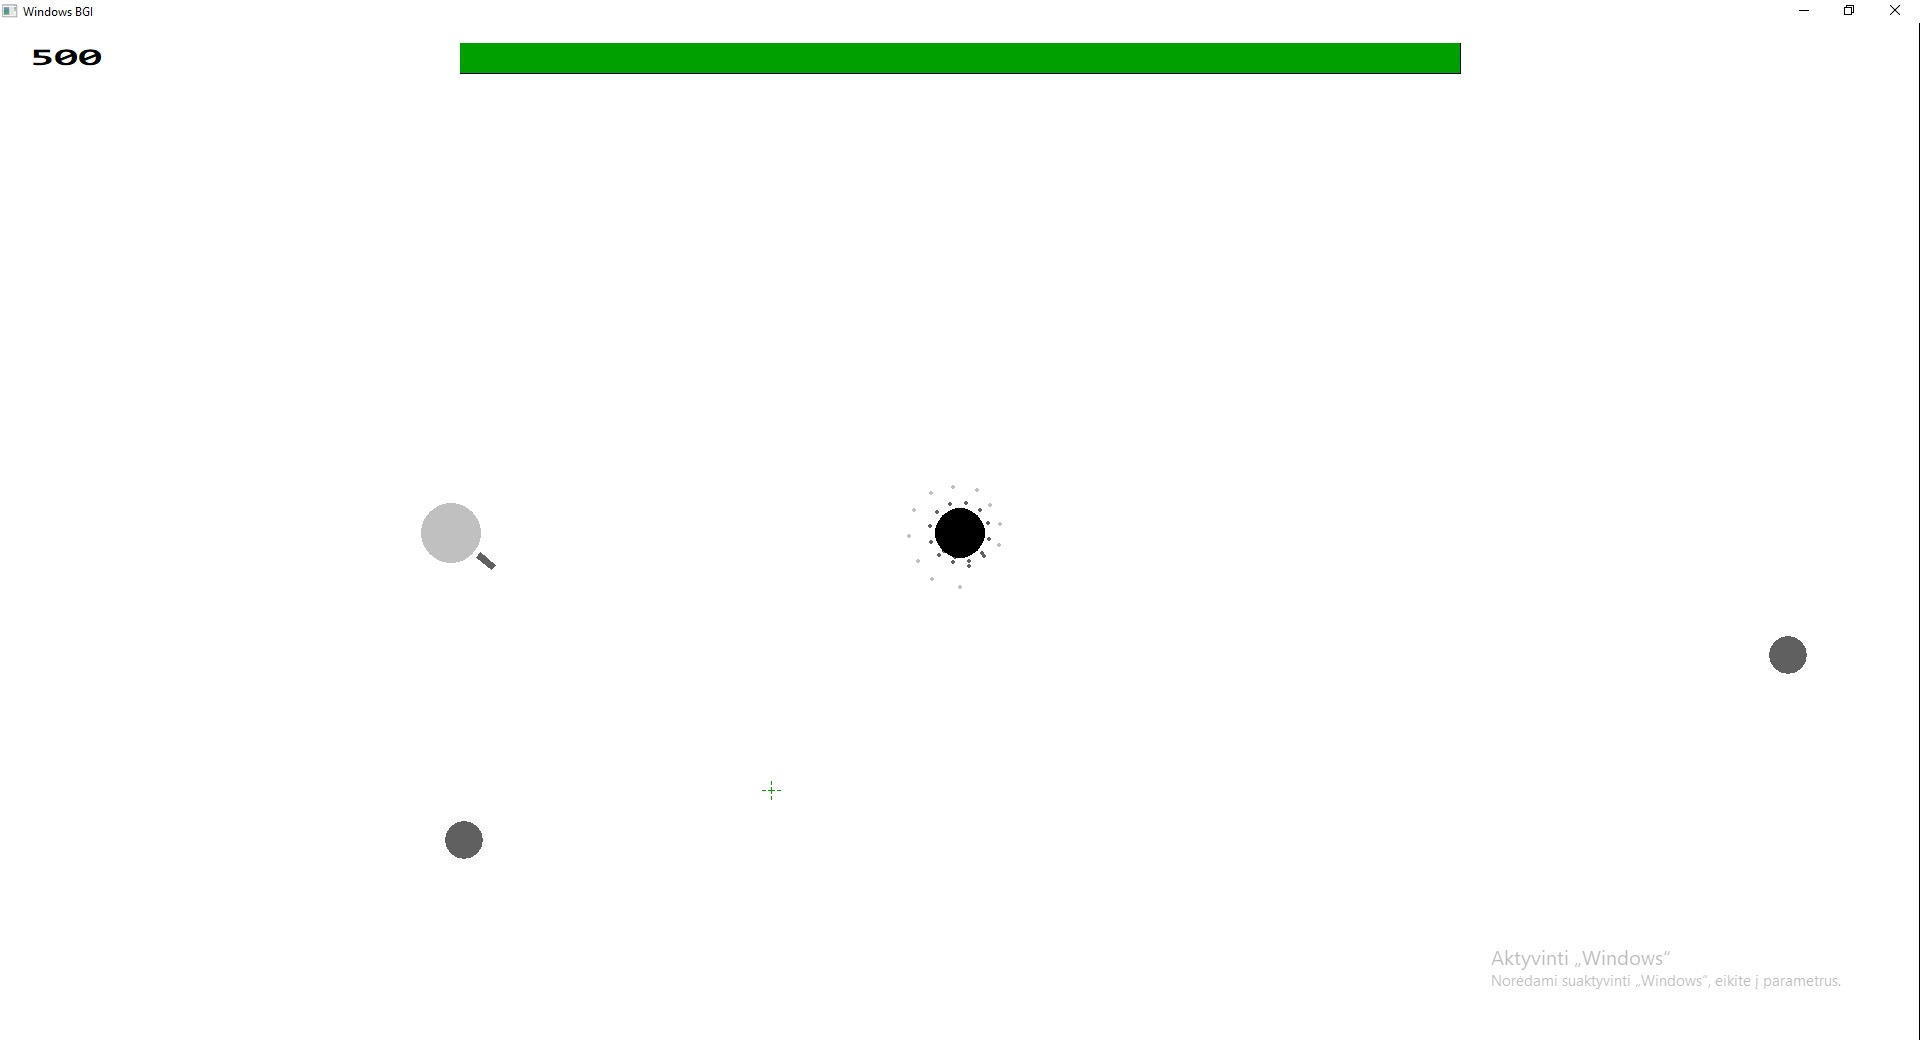 Game made entirely with C++, using graphics.h library